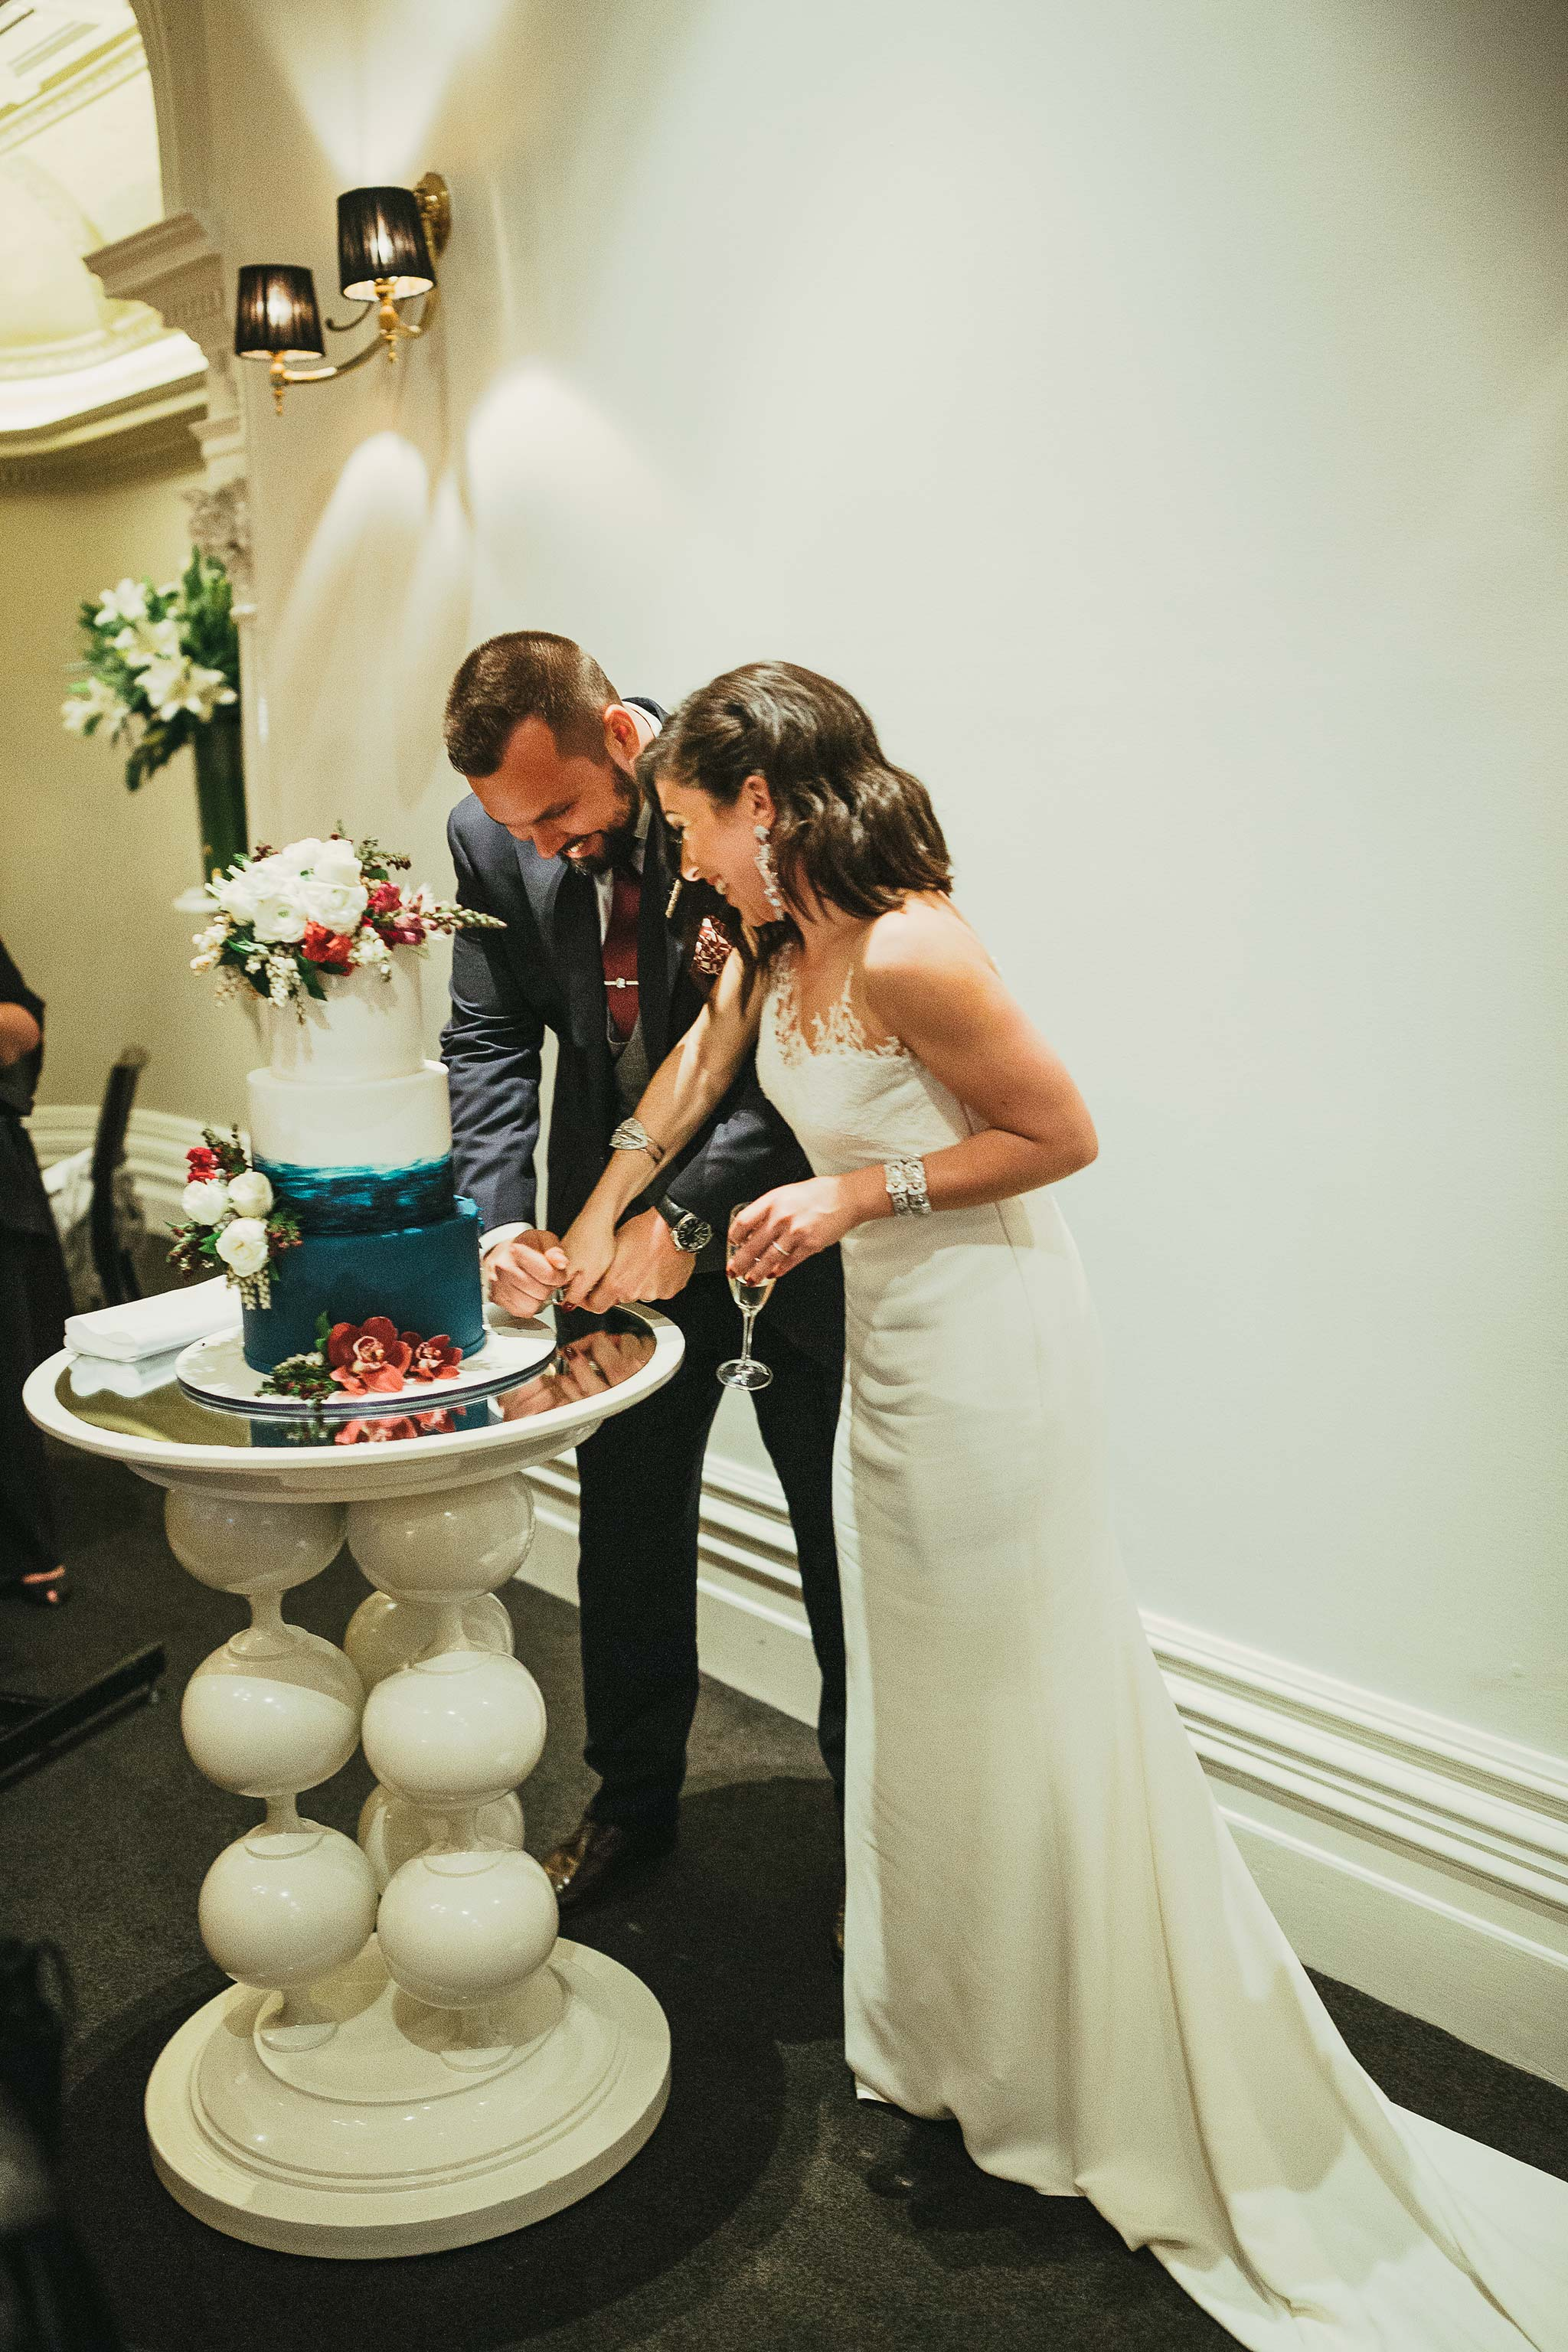 quat-quatta-night-wedding-reception-cake-cutting